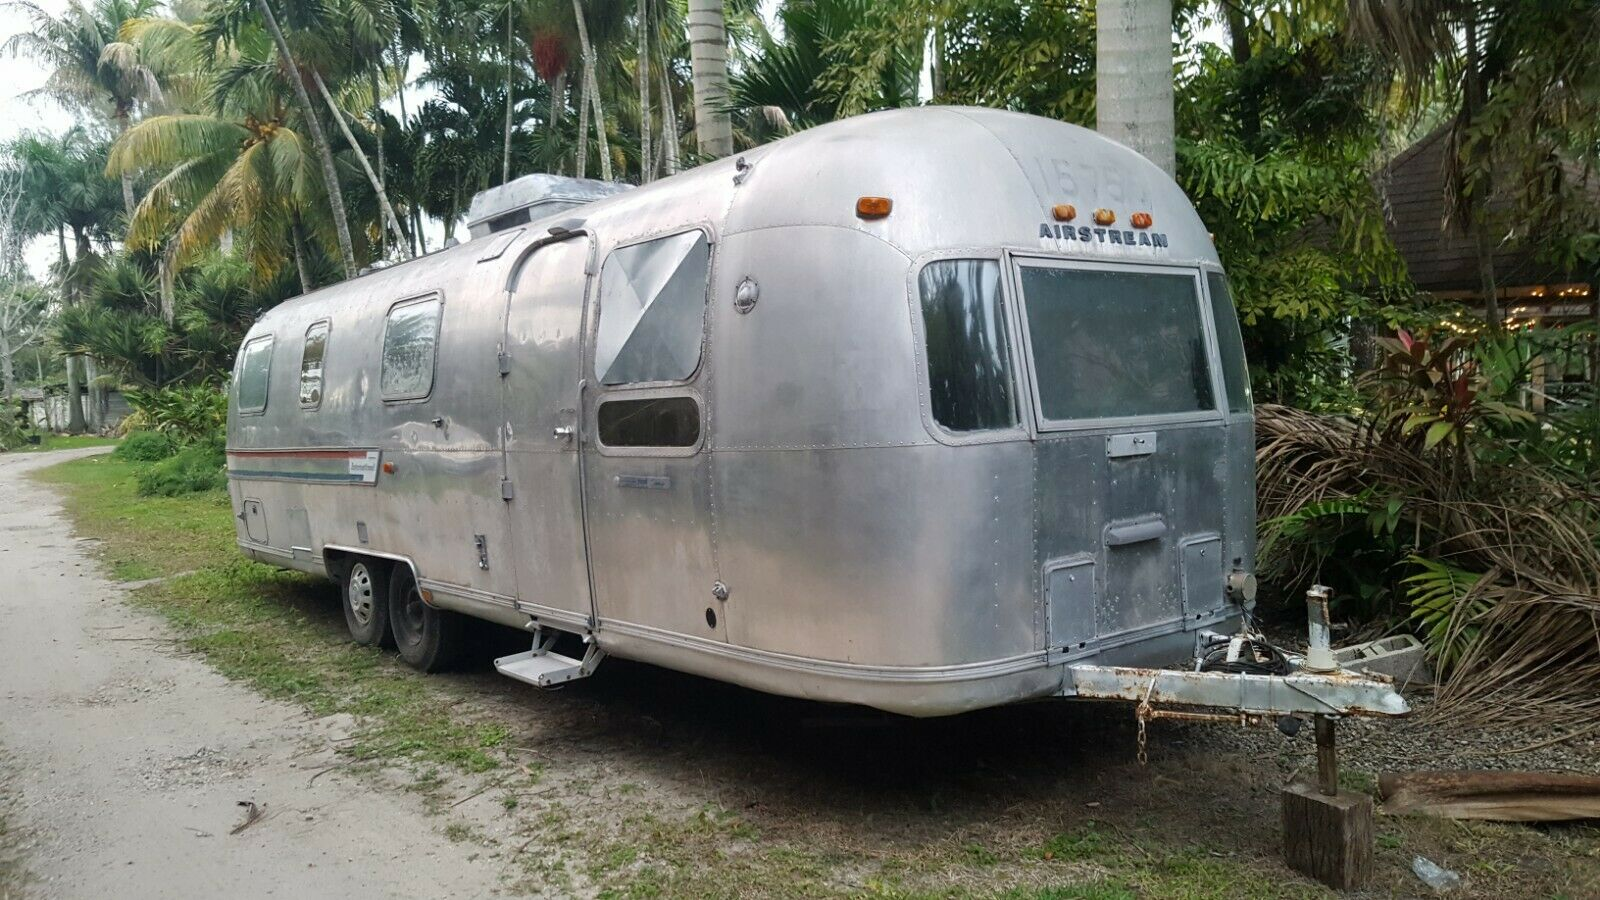 solid 1978 Airstream SOVEREIGN camper for sale